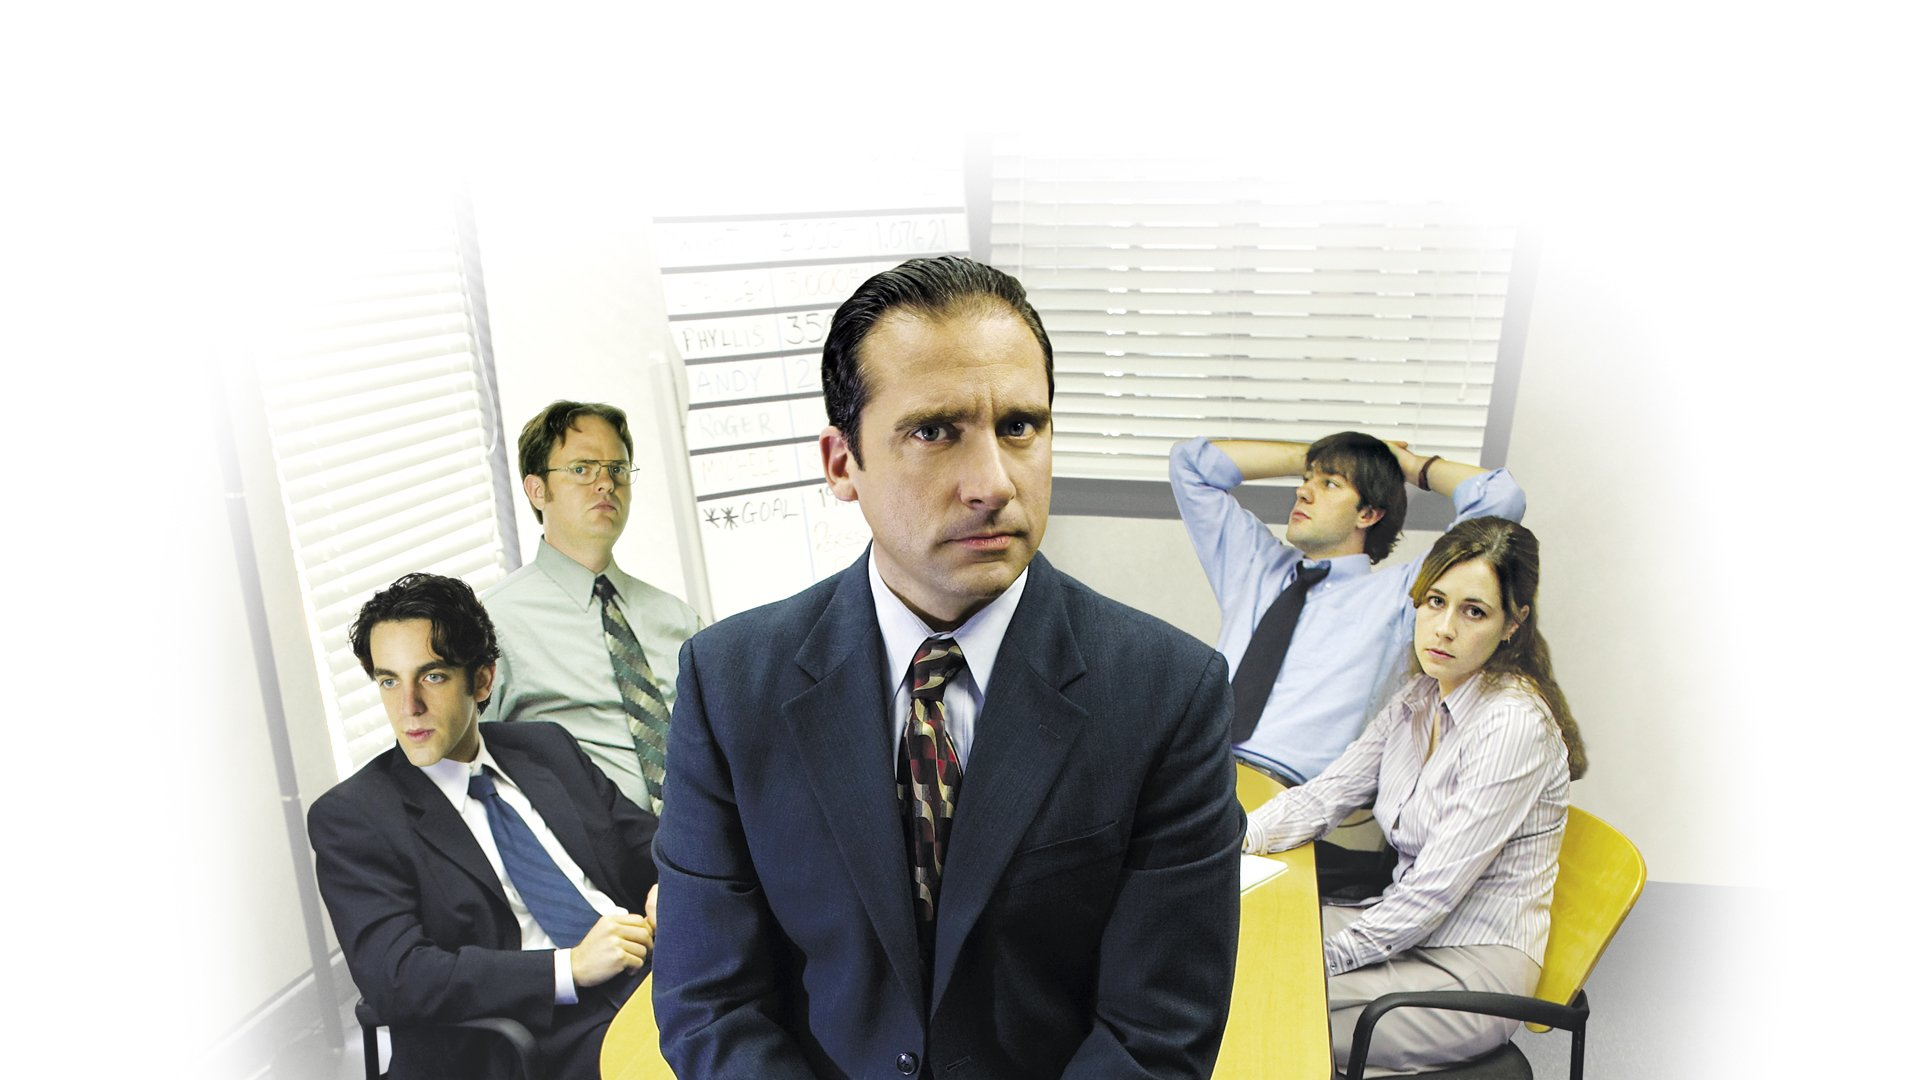 The Office (US) HD Wallpaper   Background Image ...